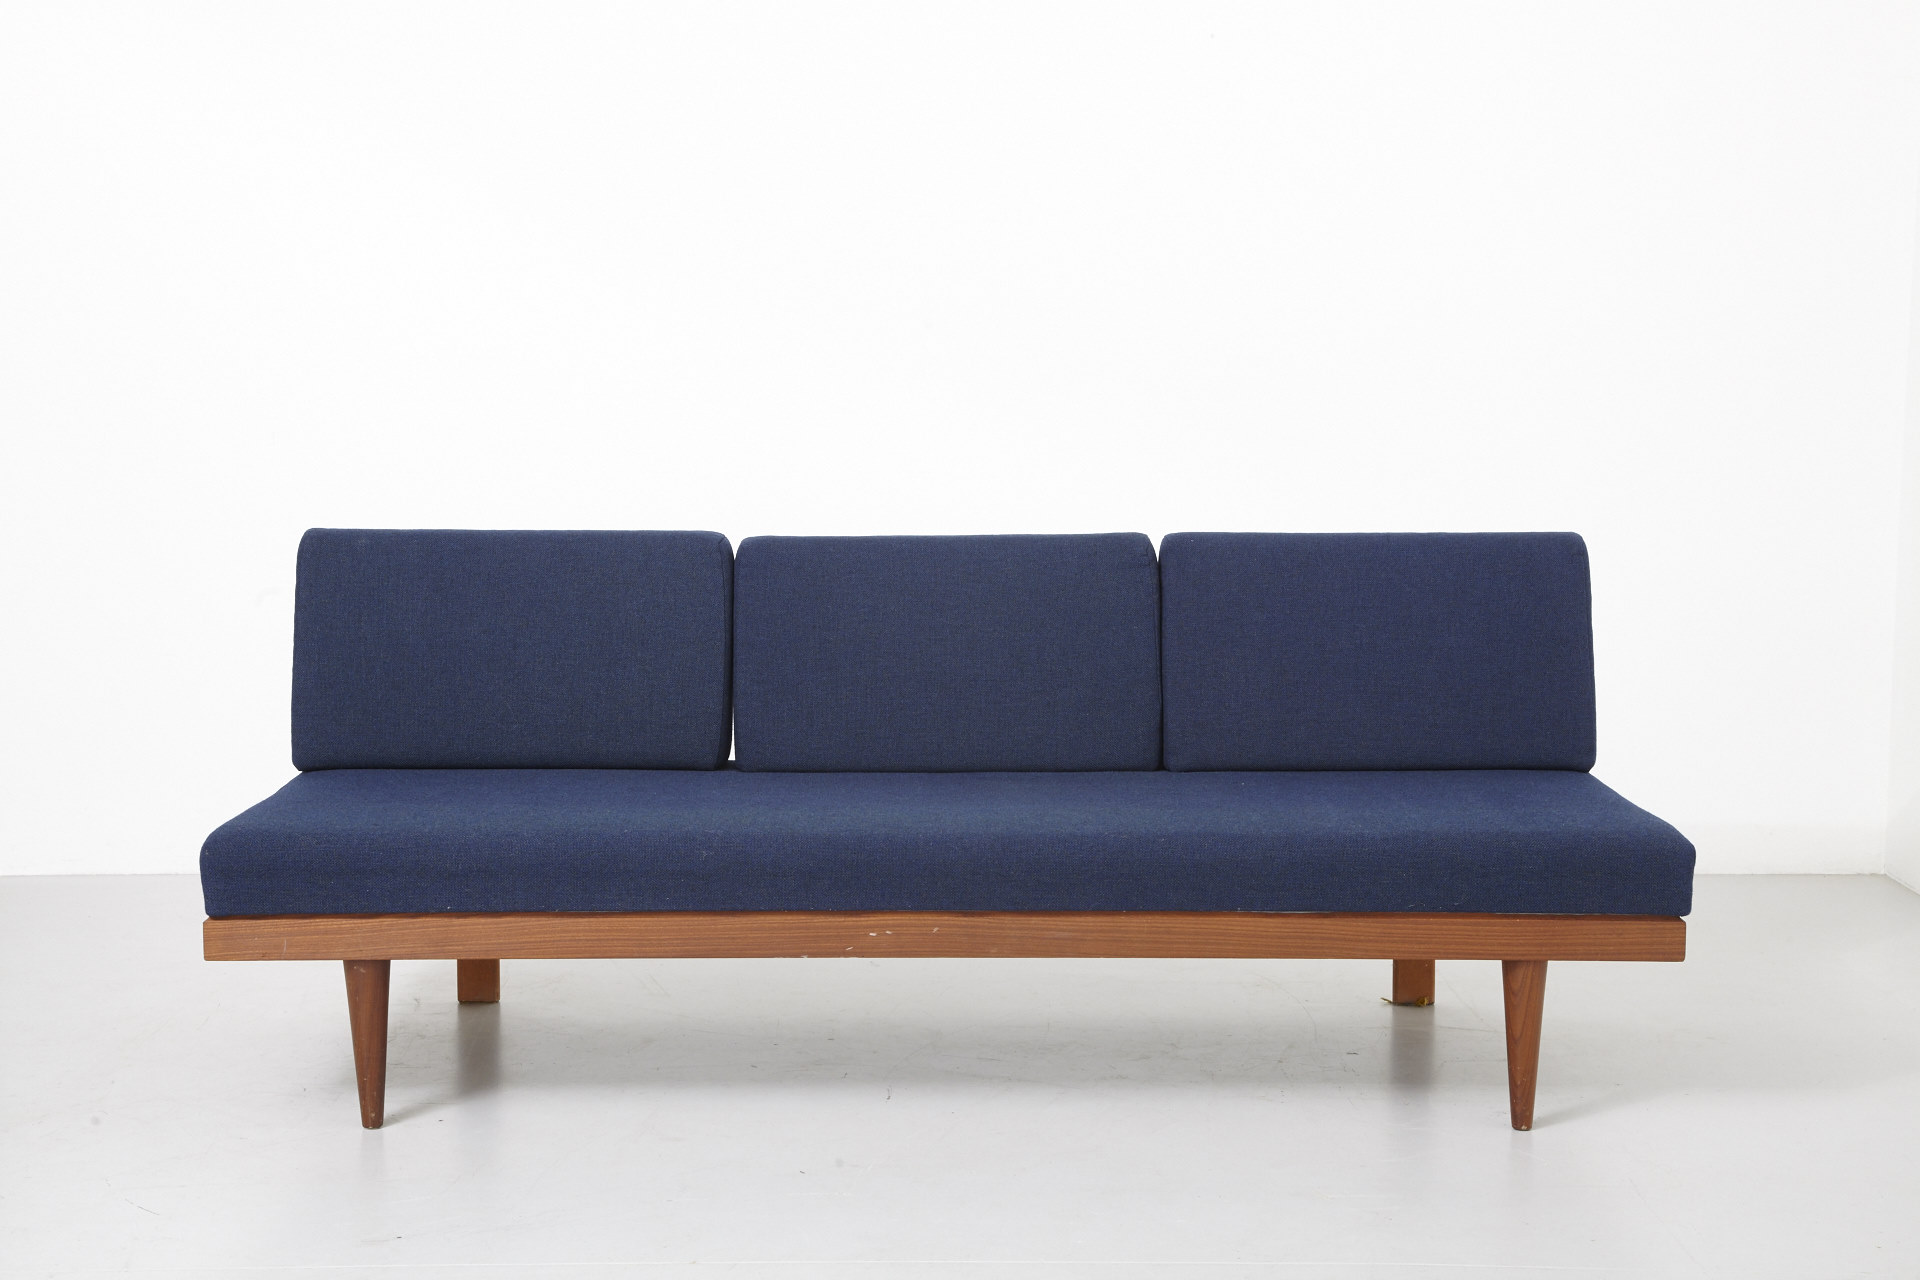 Boomerang Tv Meubel.A Daybed With Blue Cushions Teak Archive Modest Furniture